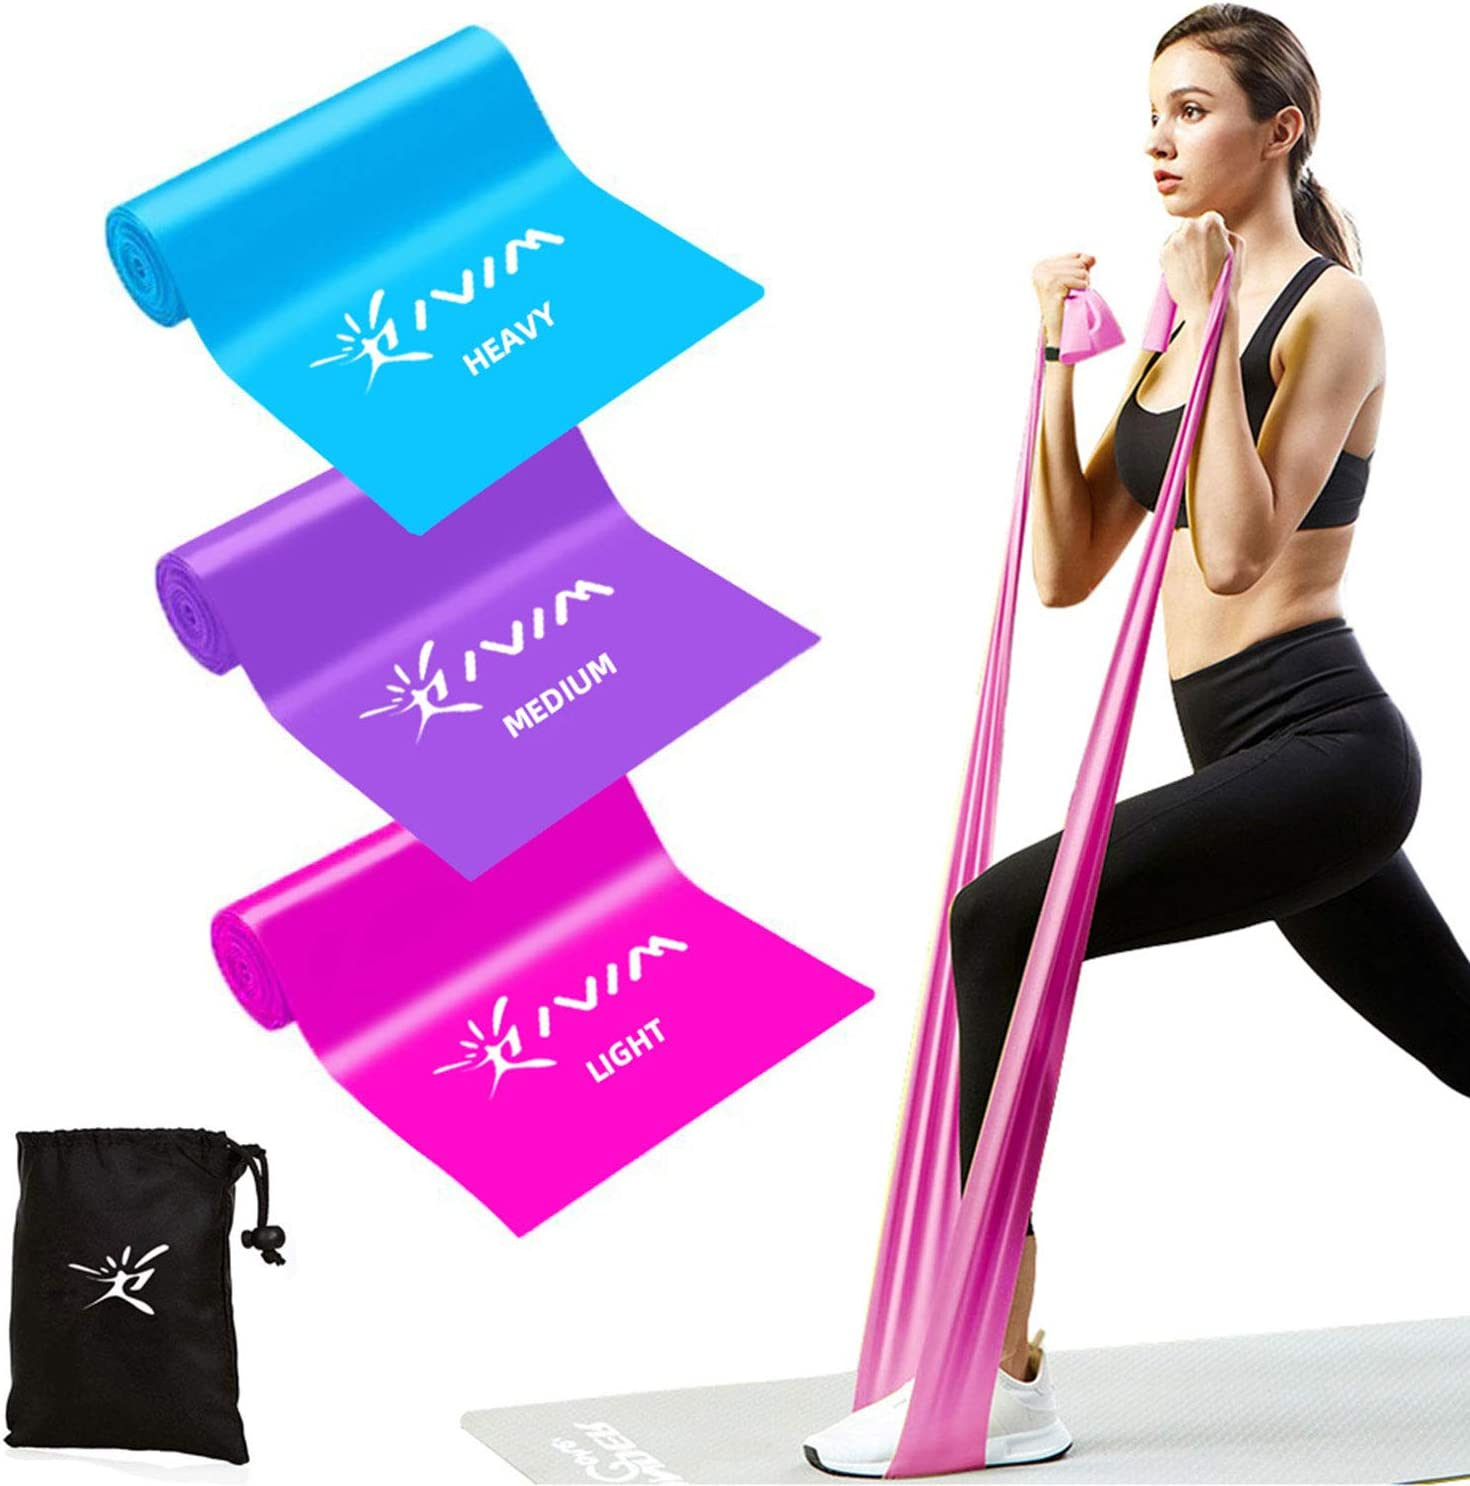 Your Fit Your Style! 2020 RiseFit Resistant Bands for Yoga and Home Workouts